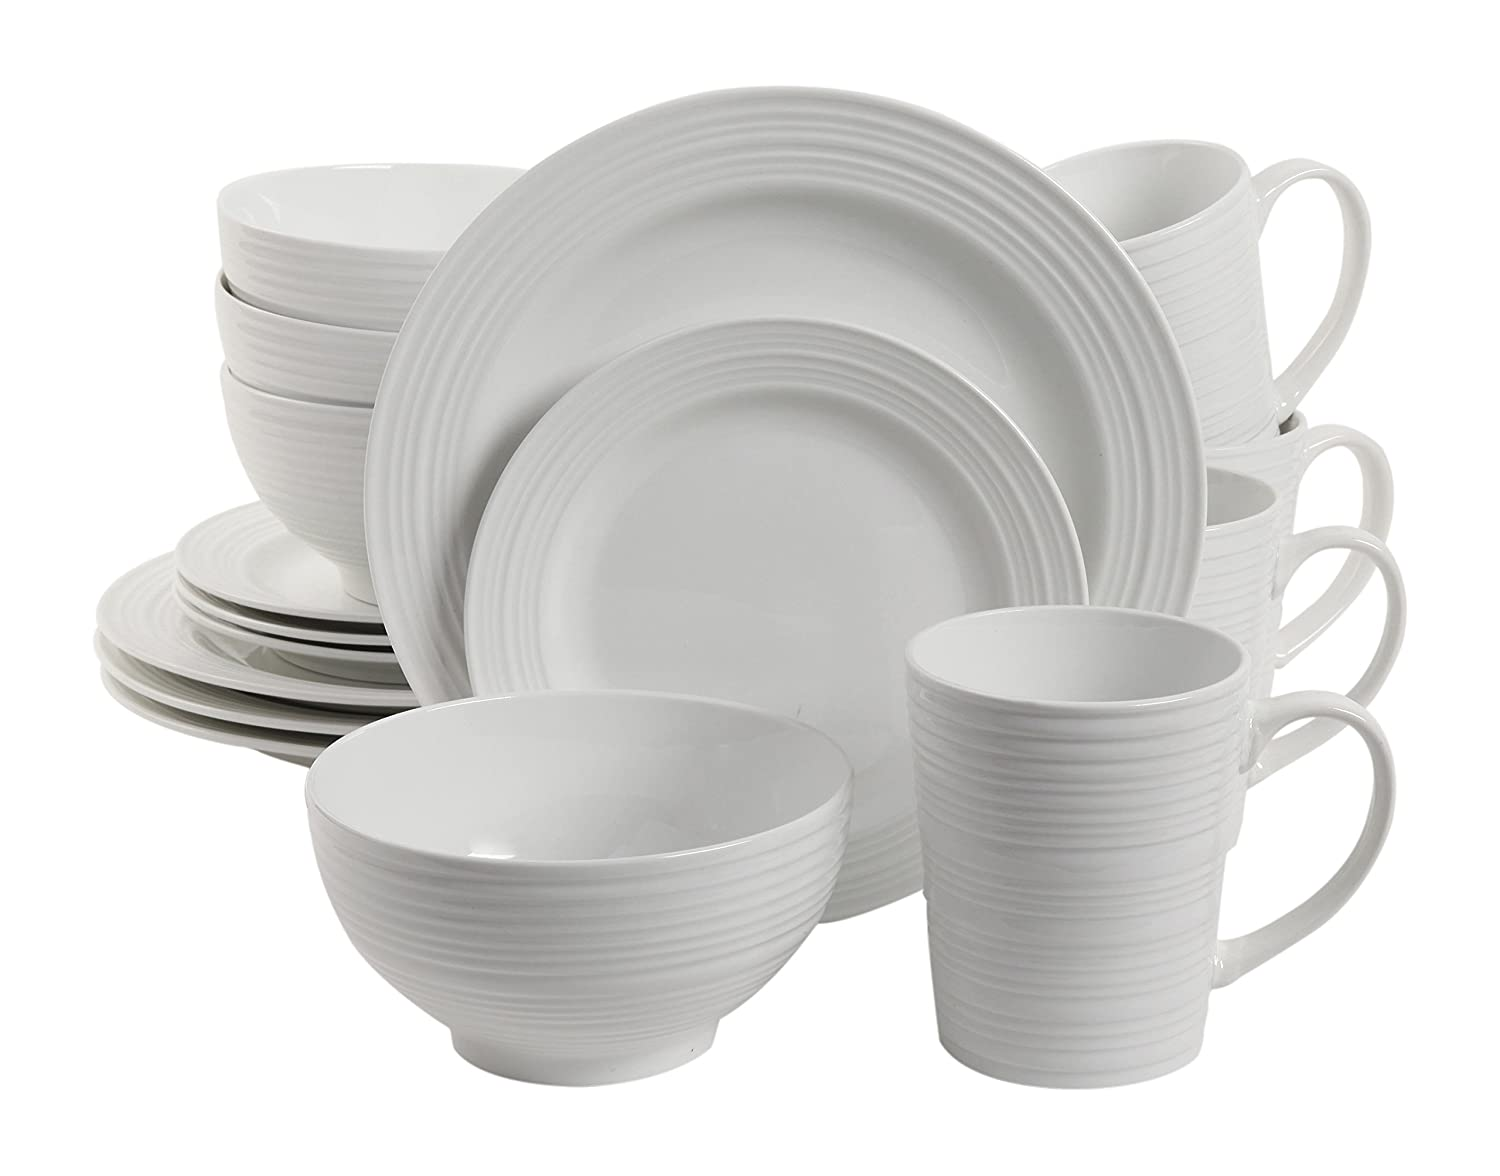 Gibson Home 102504.16RM Amelia Court 16 Piece Dinnerware Set, White